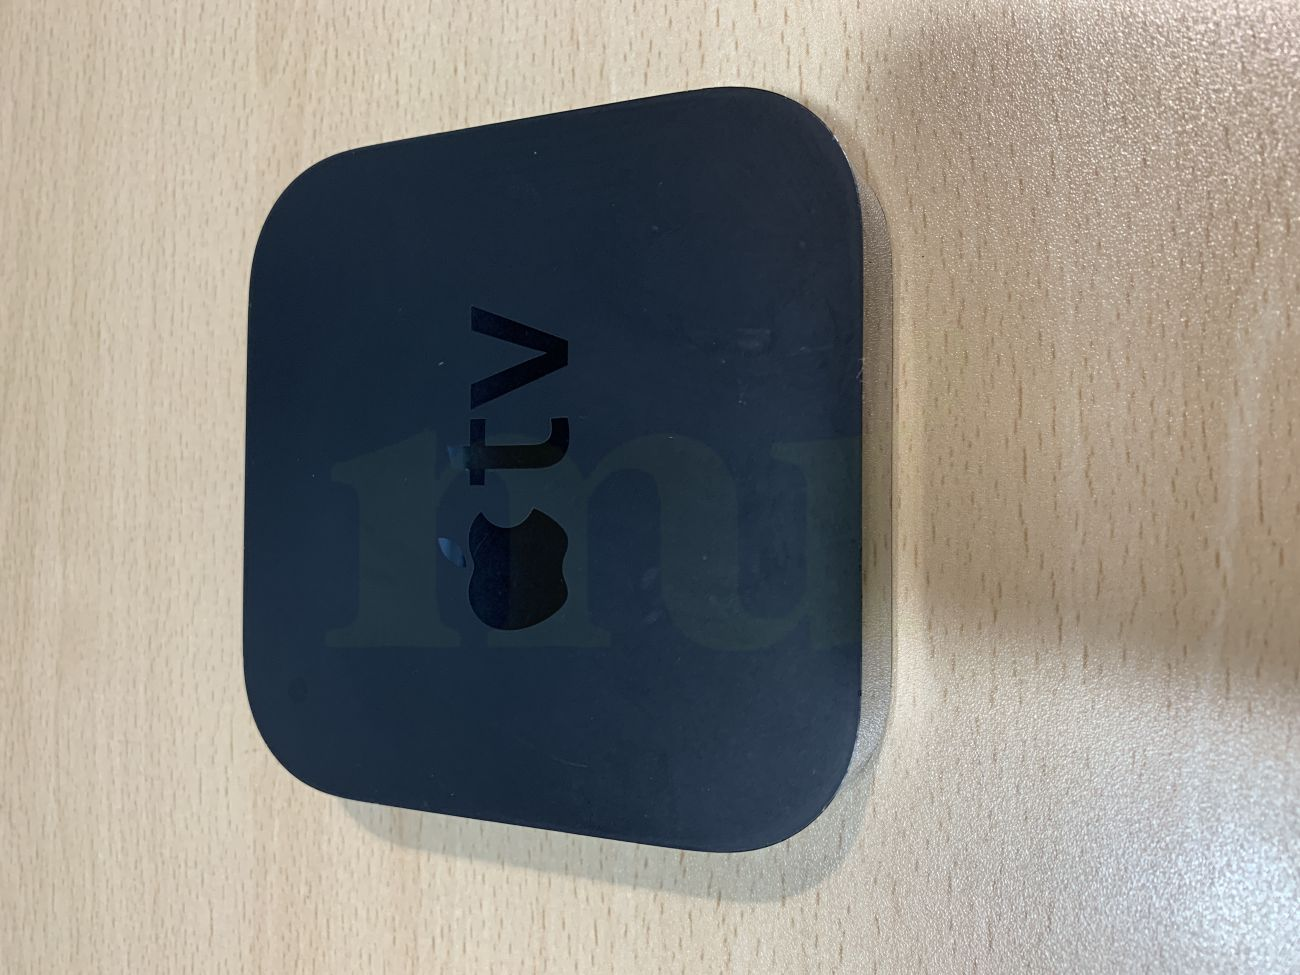 vender-apple-tv-apple-tv-apple-segunda-mano-19382273820190615190846-1